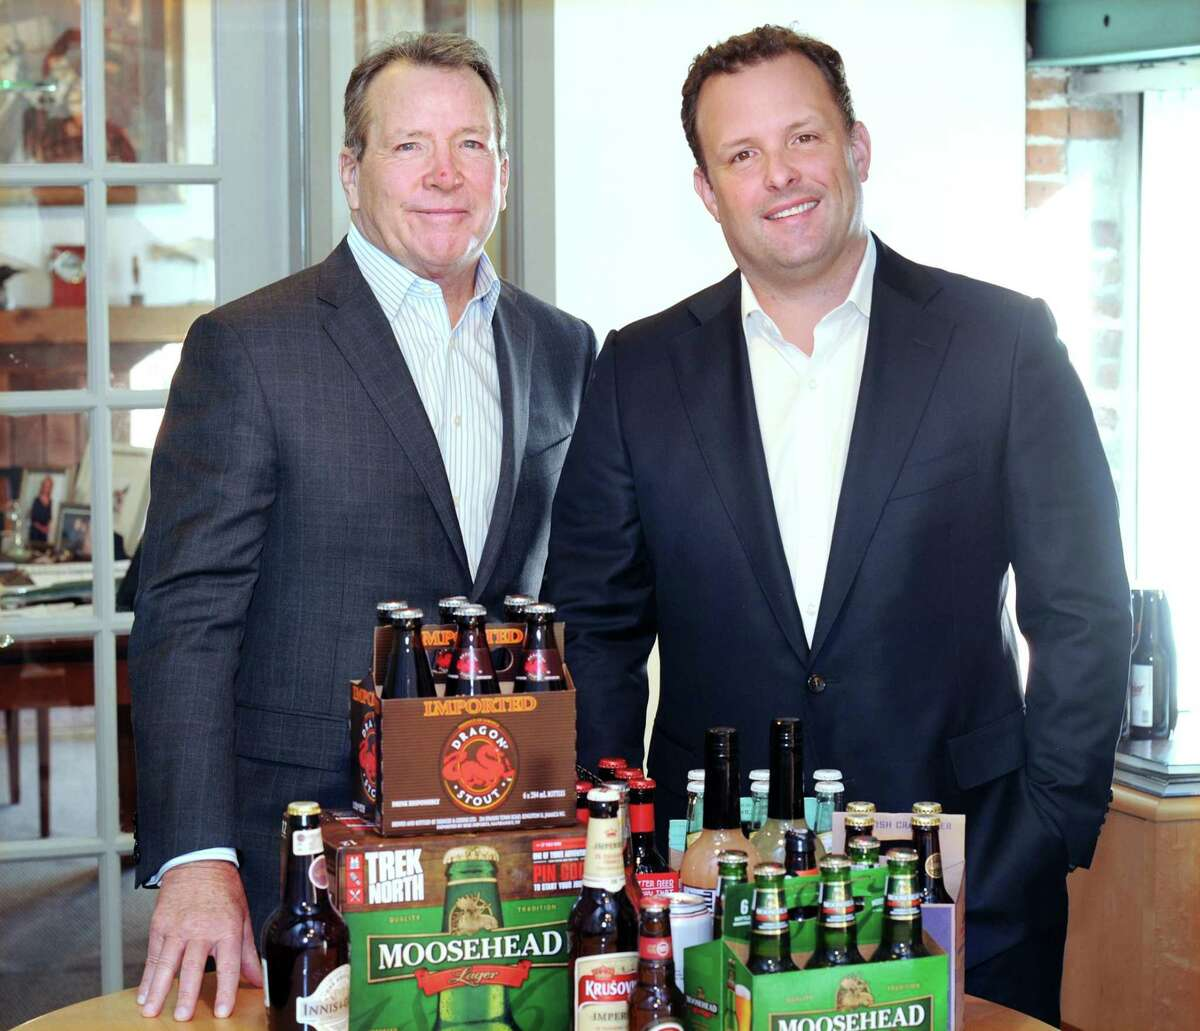 United States Beverage Chief Executive Officer Joseph Fisch, left, with his son, Justin Fisch, who was recently promoted to president of the company, posed with their company's beverages at their company headquarters in Stamford, Conn., Friday, Nov. 10, 2017. The company is entering its third decade of business competing in the U.S. beer industry and focuses on the imported and U.S. craft beer, cider and specialty beverage markets.